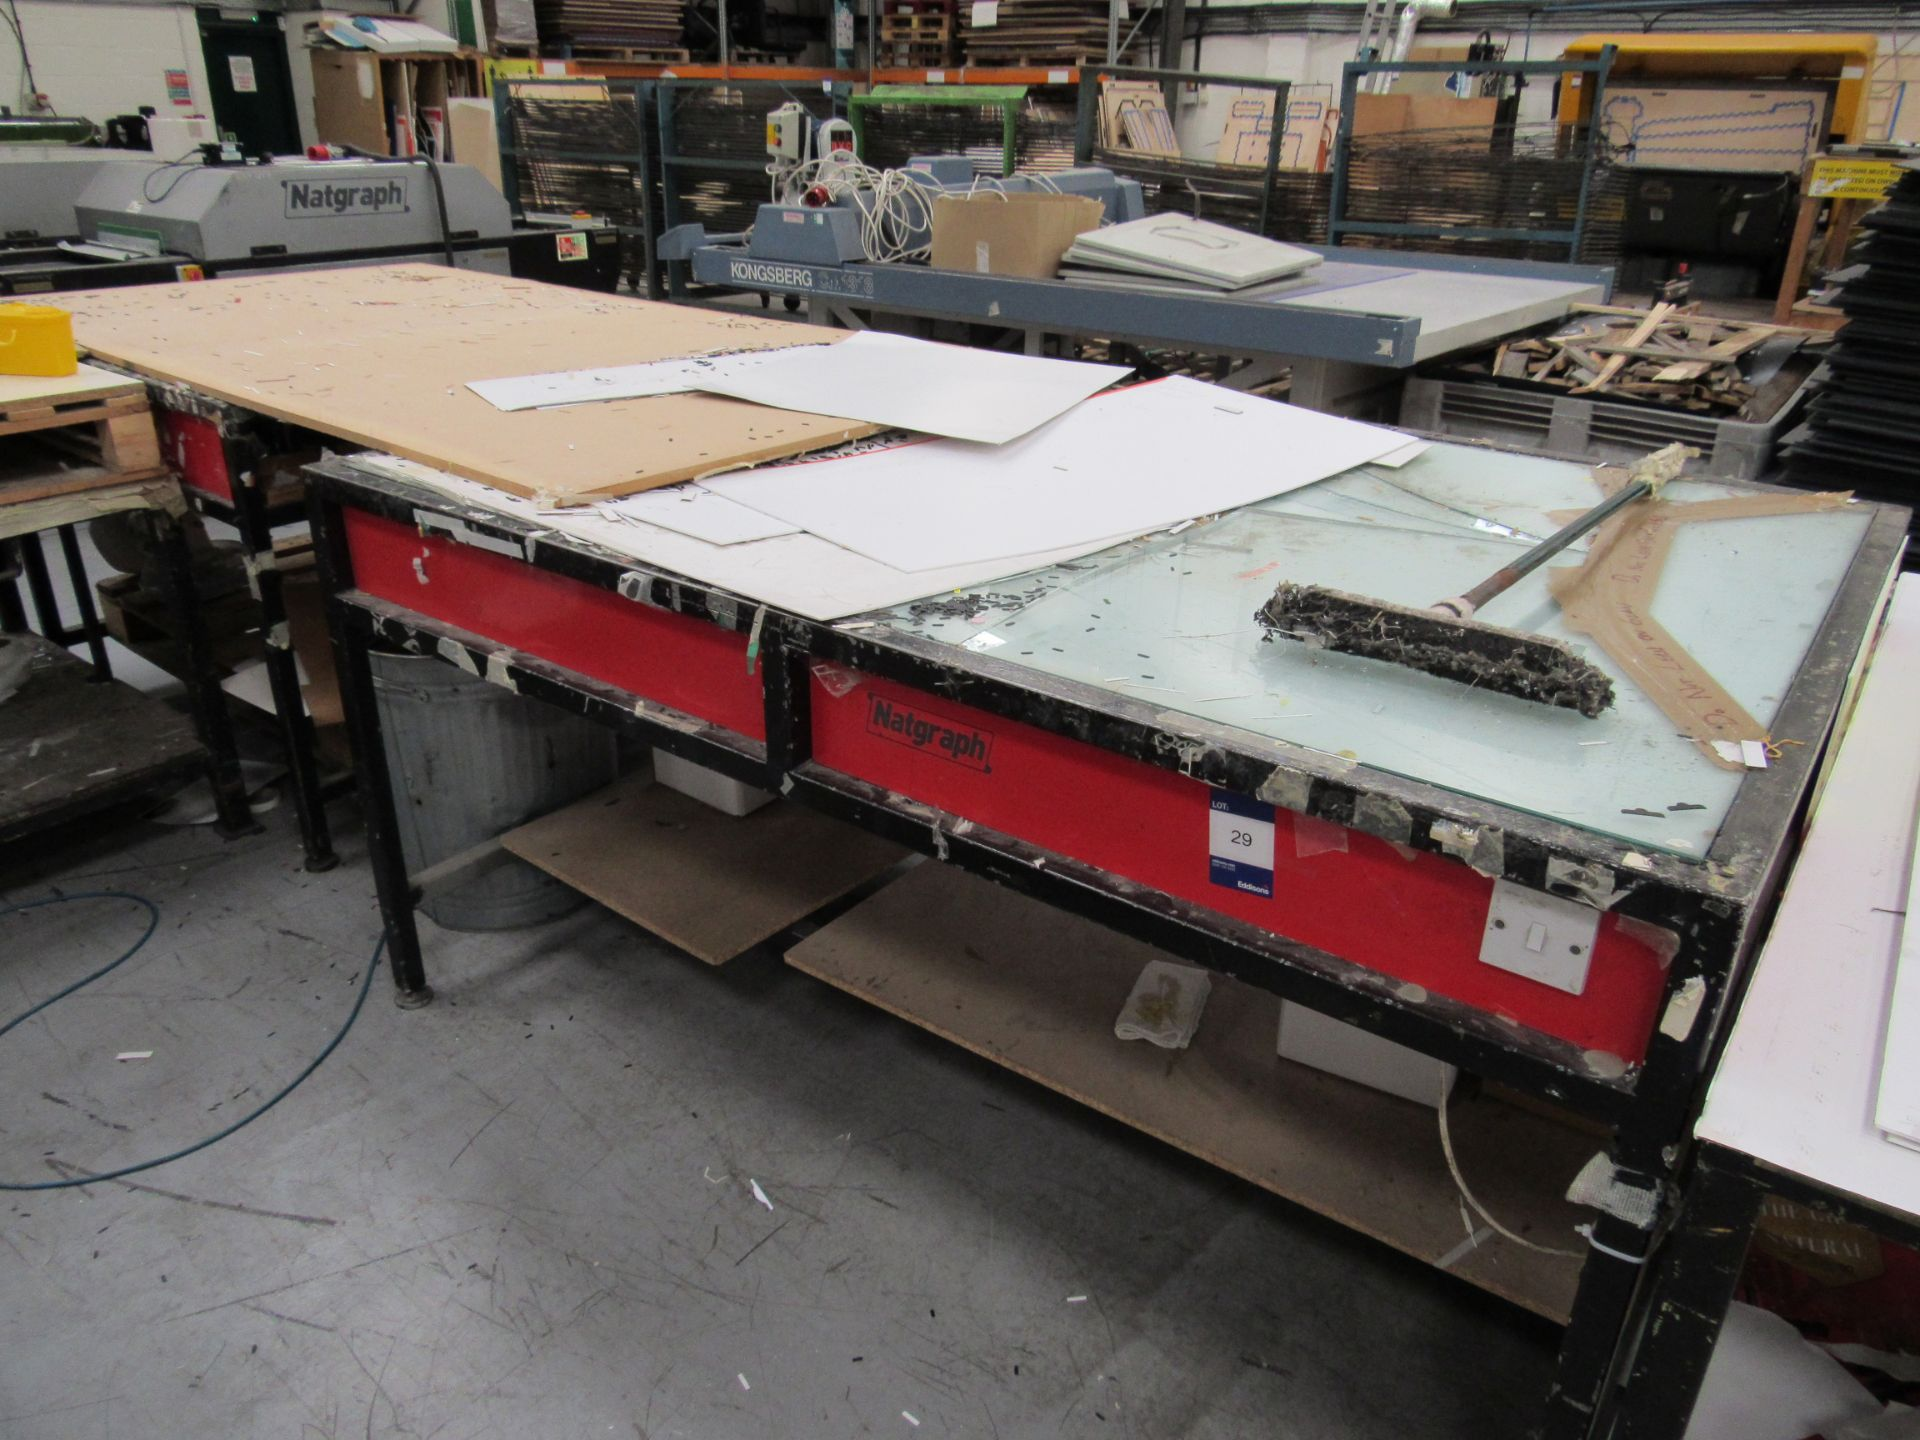 Natgraph Light Table 1300x1910mm and Natgraph Table – Spares or Repairs